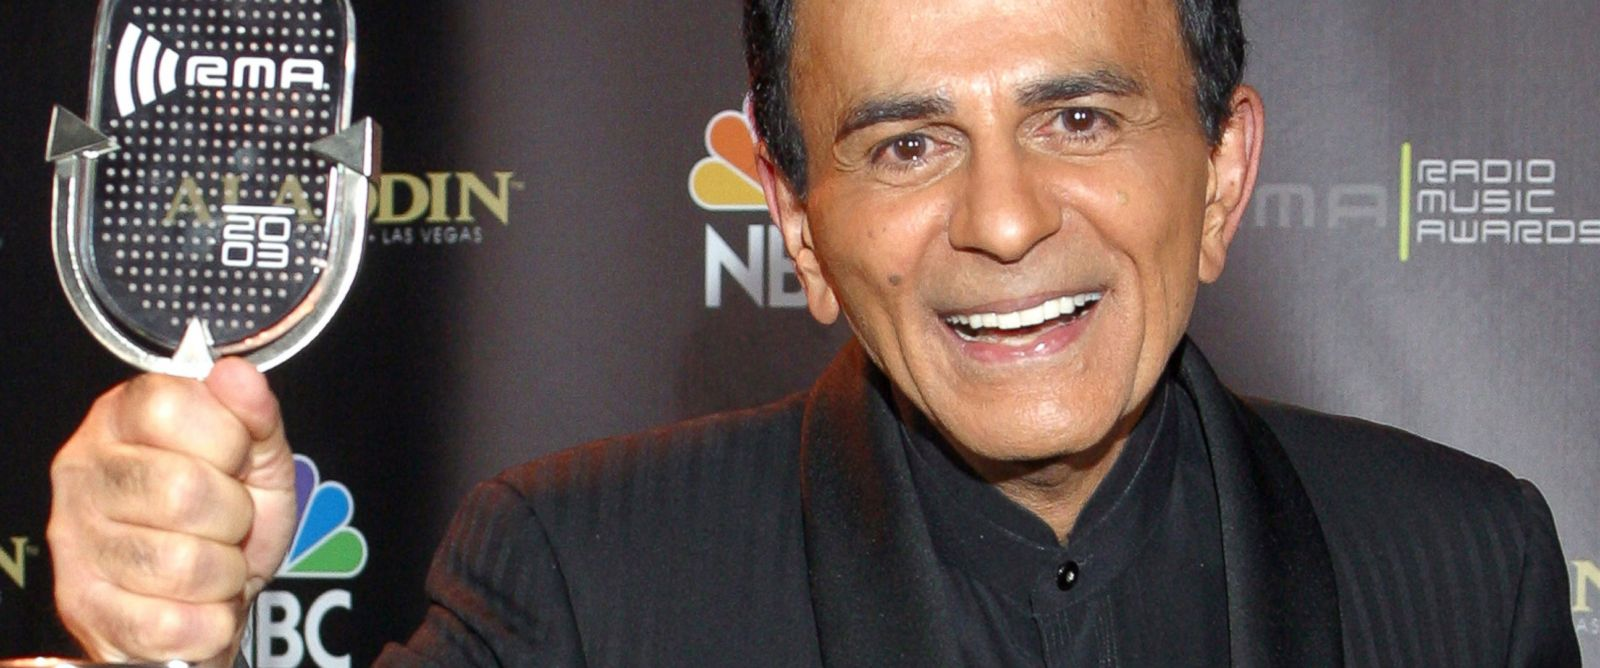 PHOTO: Casey Kasem poses for photographers after receiving the Radio Icon award during The 2003 Radio Music Awards in Las Vegas in this Oct. 27, 2003 file photo.